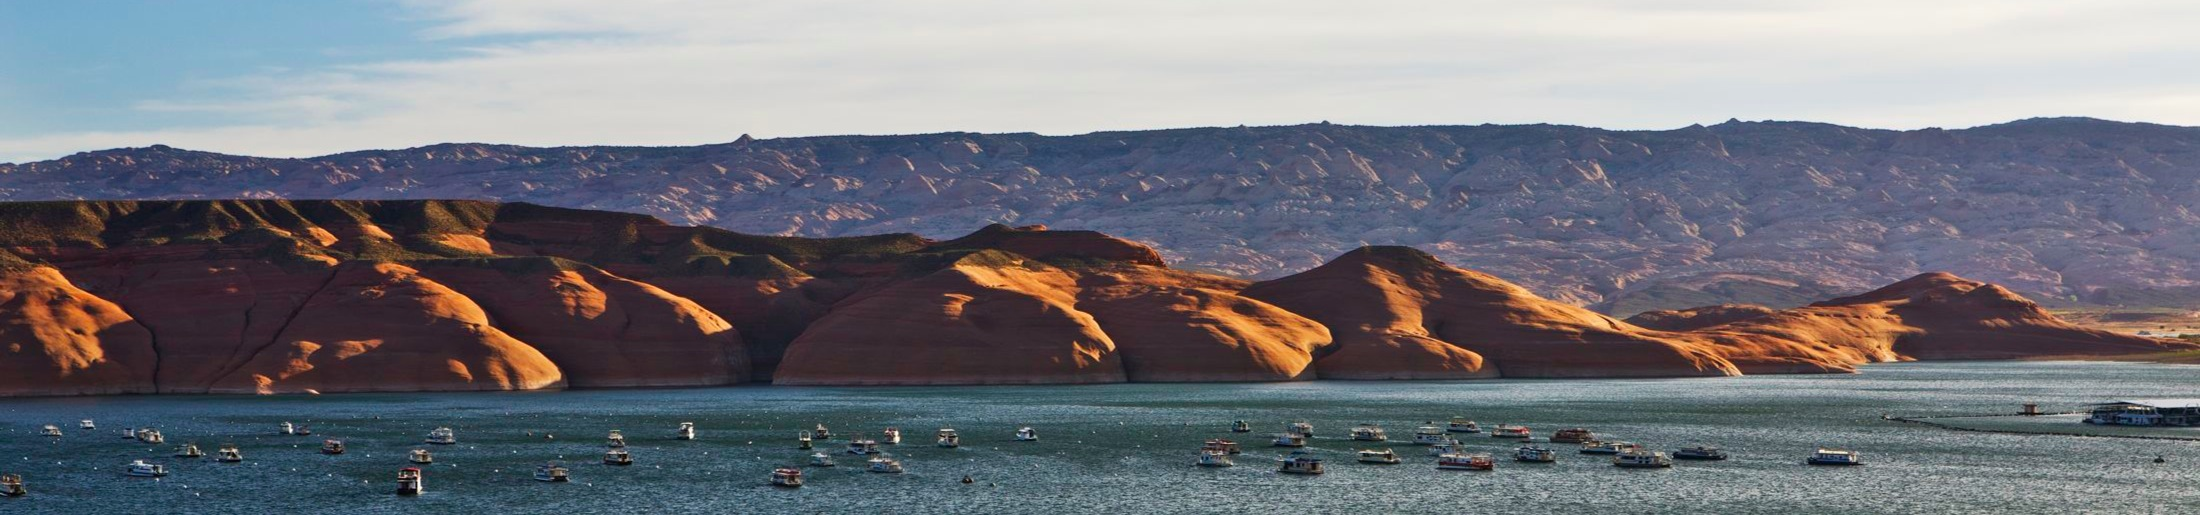 Bullfrog Marina Services Buoy Field at Lake Powell